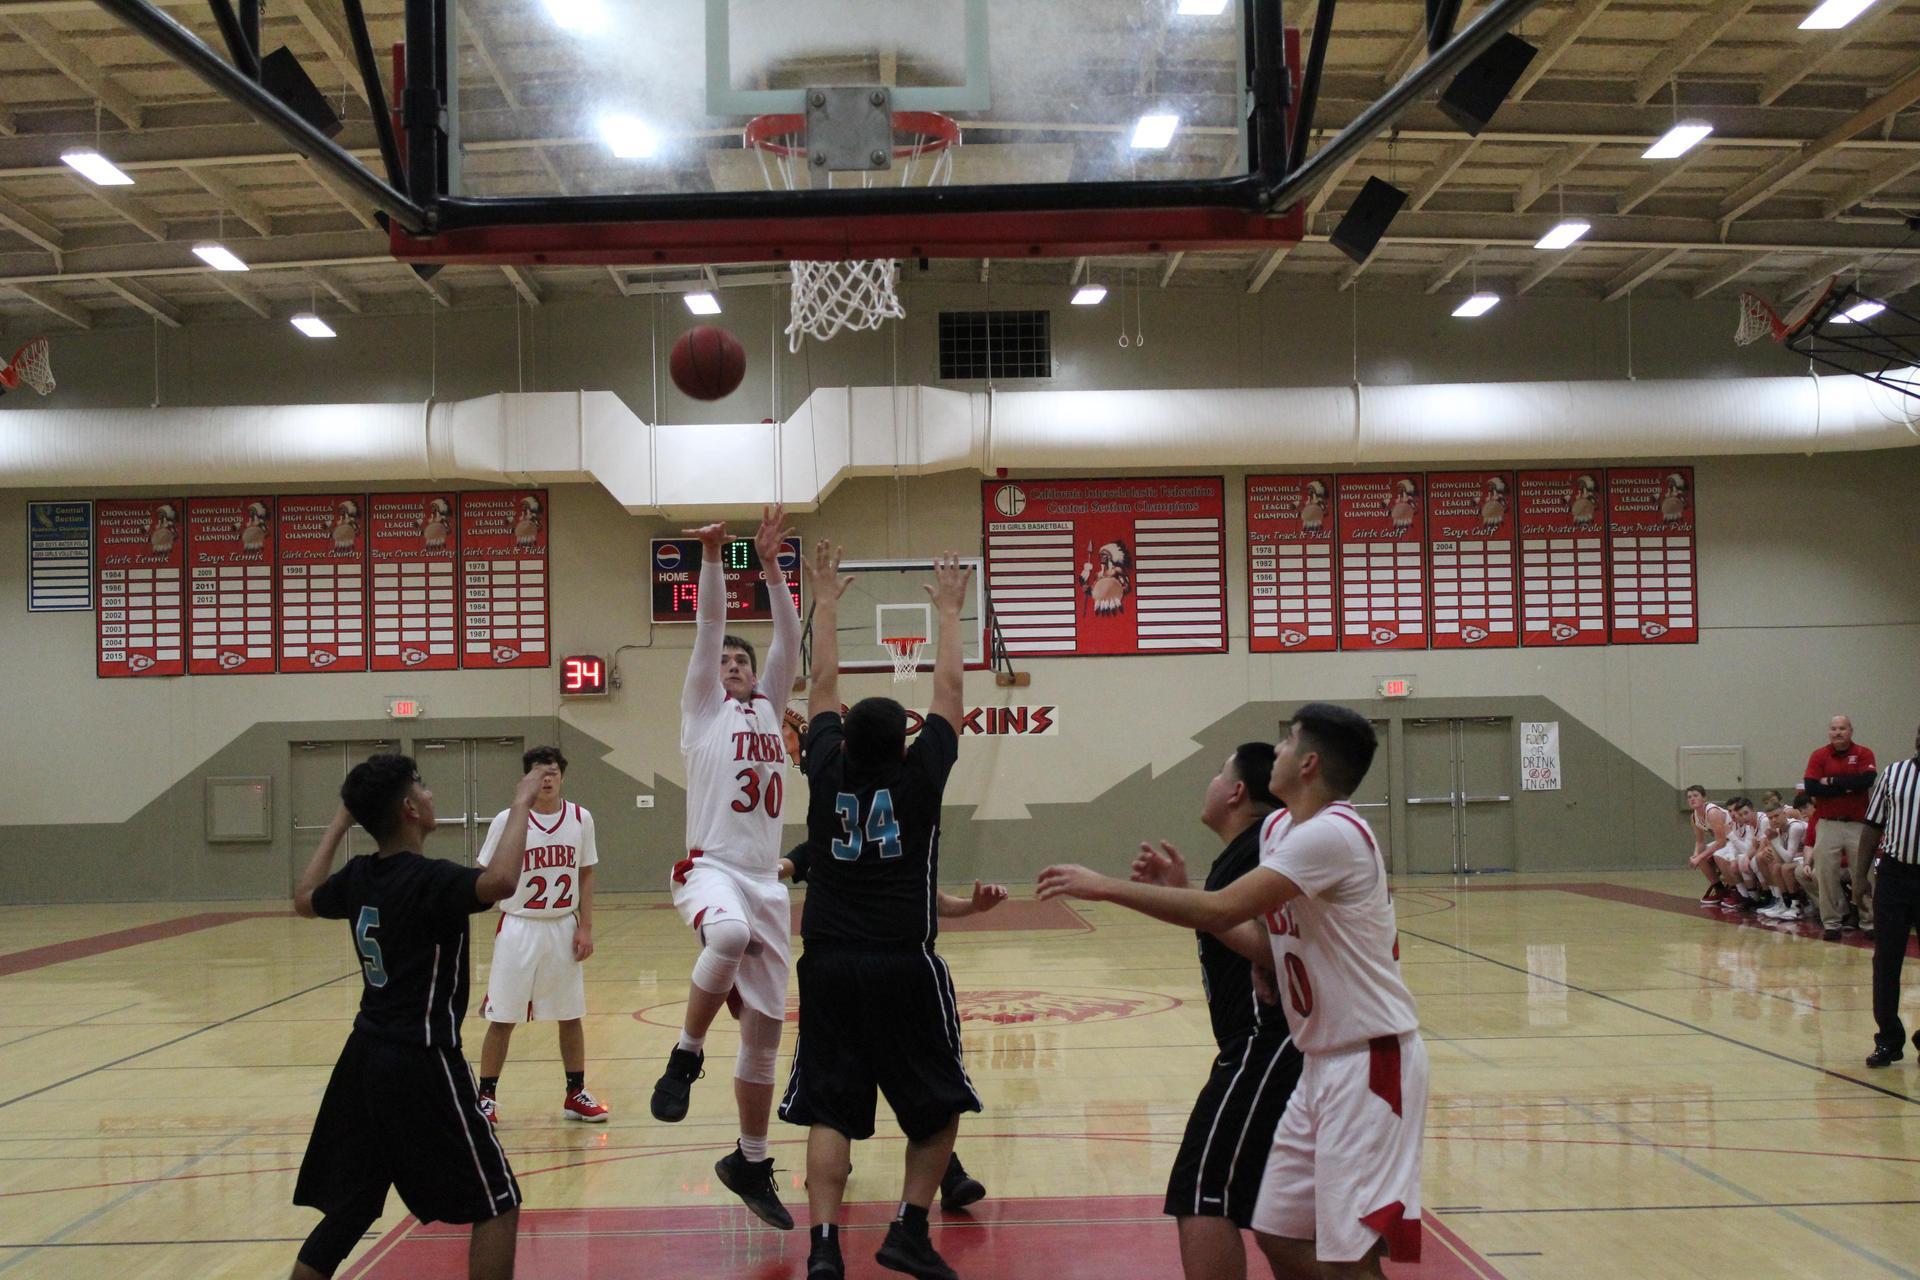 Junior Varsity boys playing basketball against Mendota